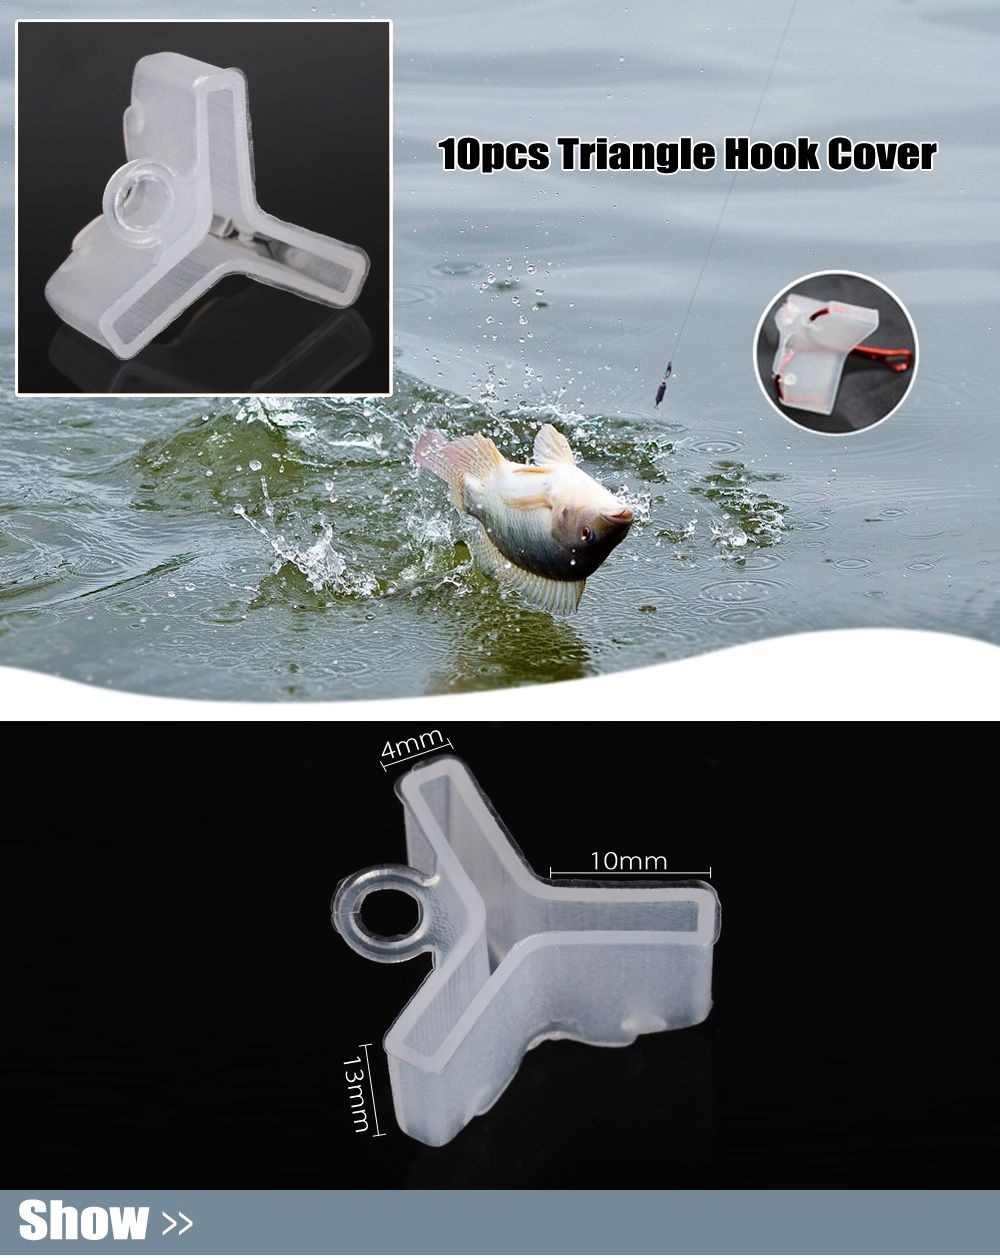 White 10pcs fishing triangle hook cover for no 4 no 5 for Fishing hook cover